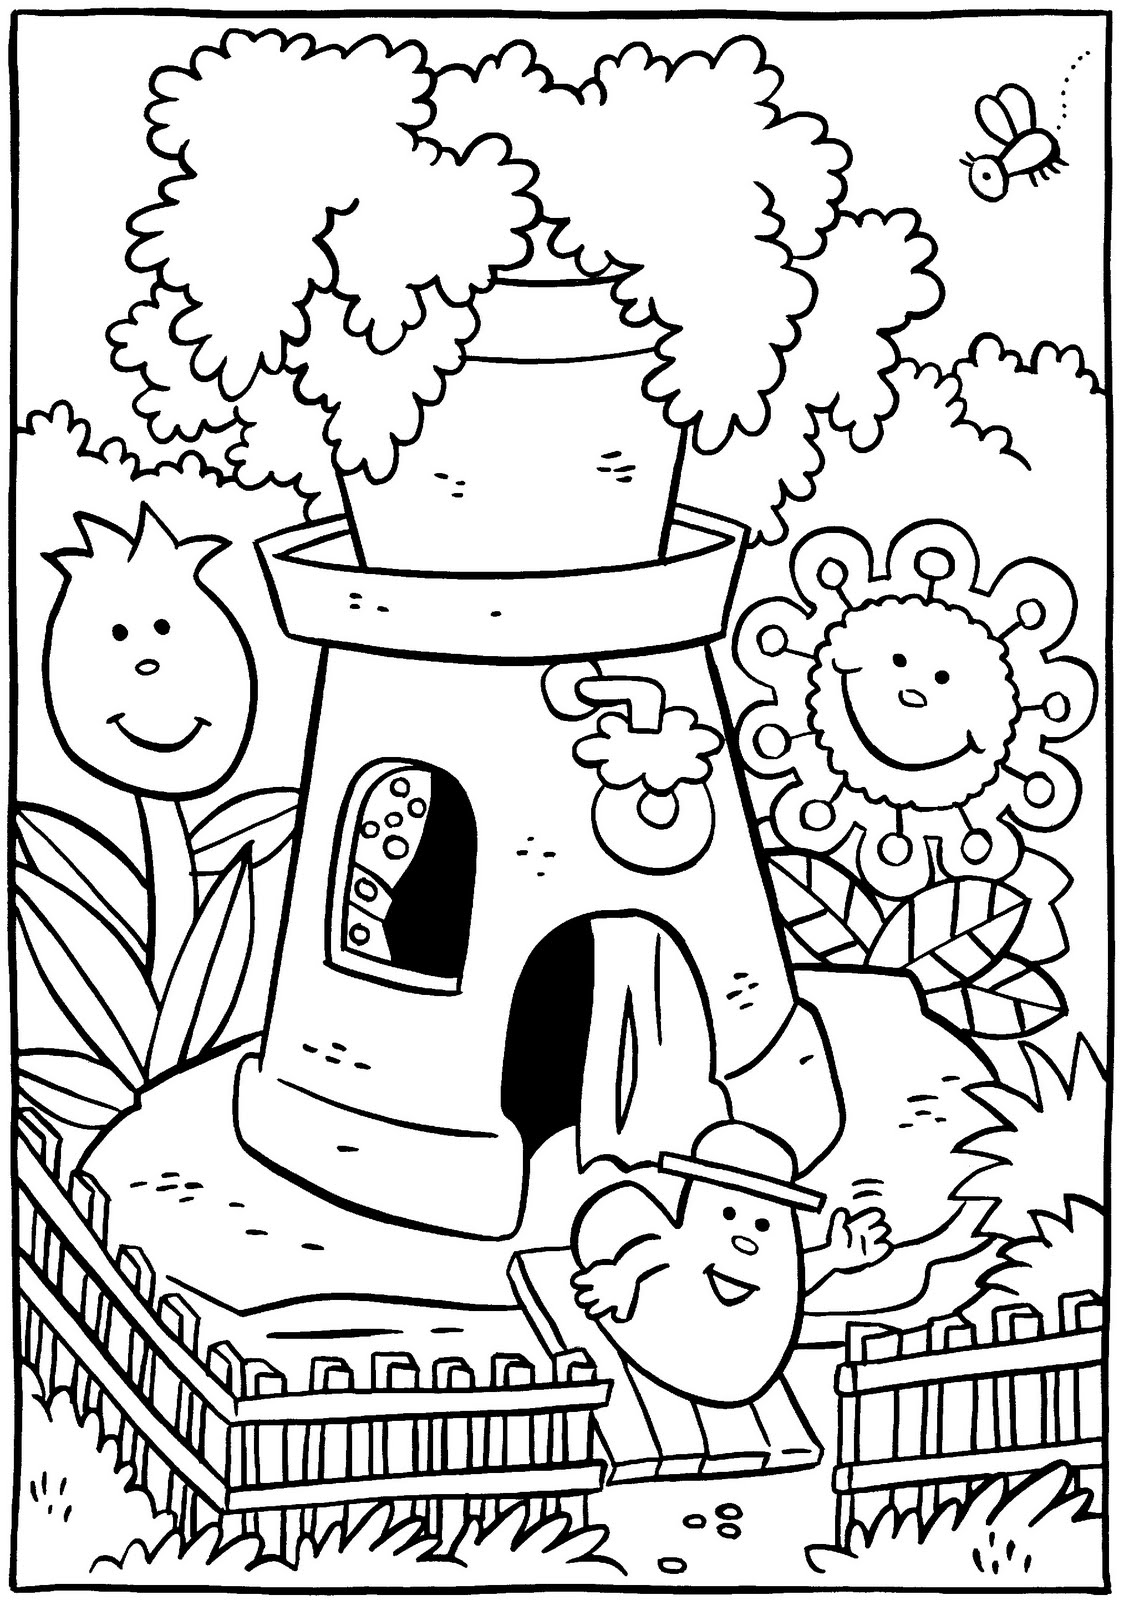 little house coloring pages - photo#23